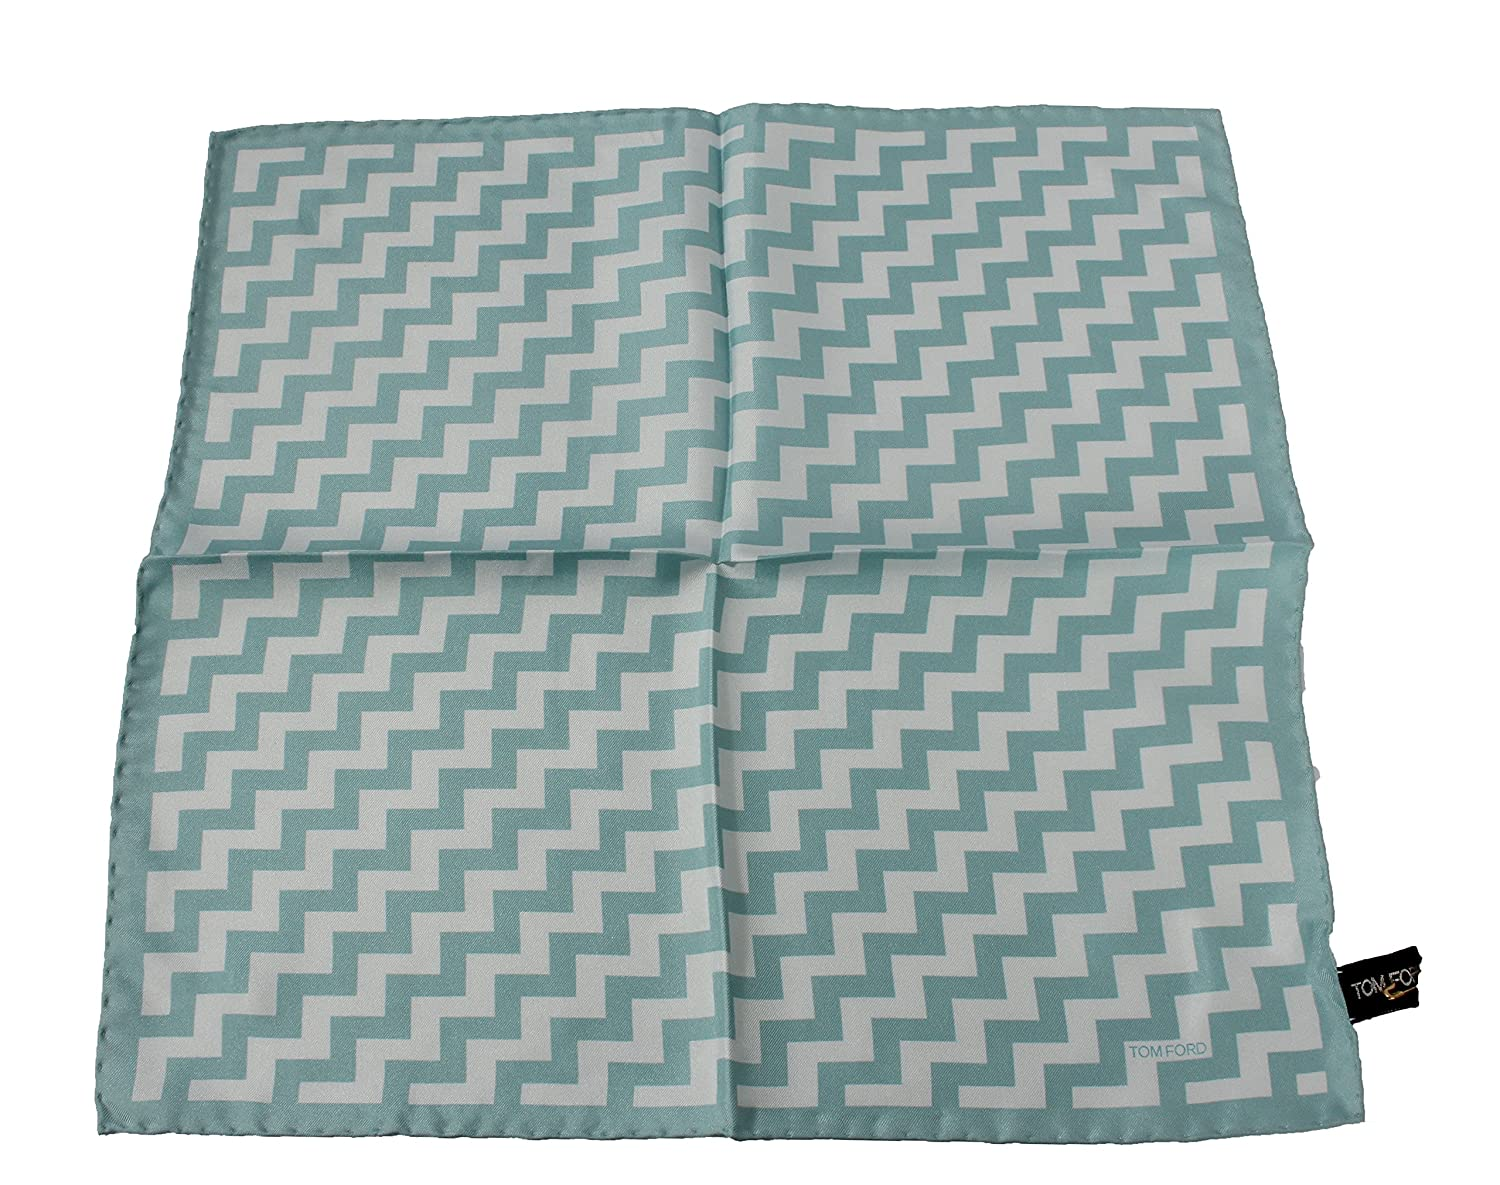 Tom Ford Pocket Square Pale Turquoise Zig Zag Design 100% Silk #Tf424